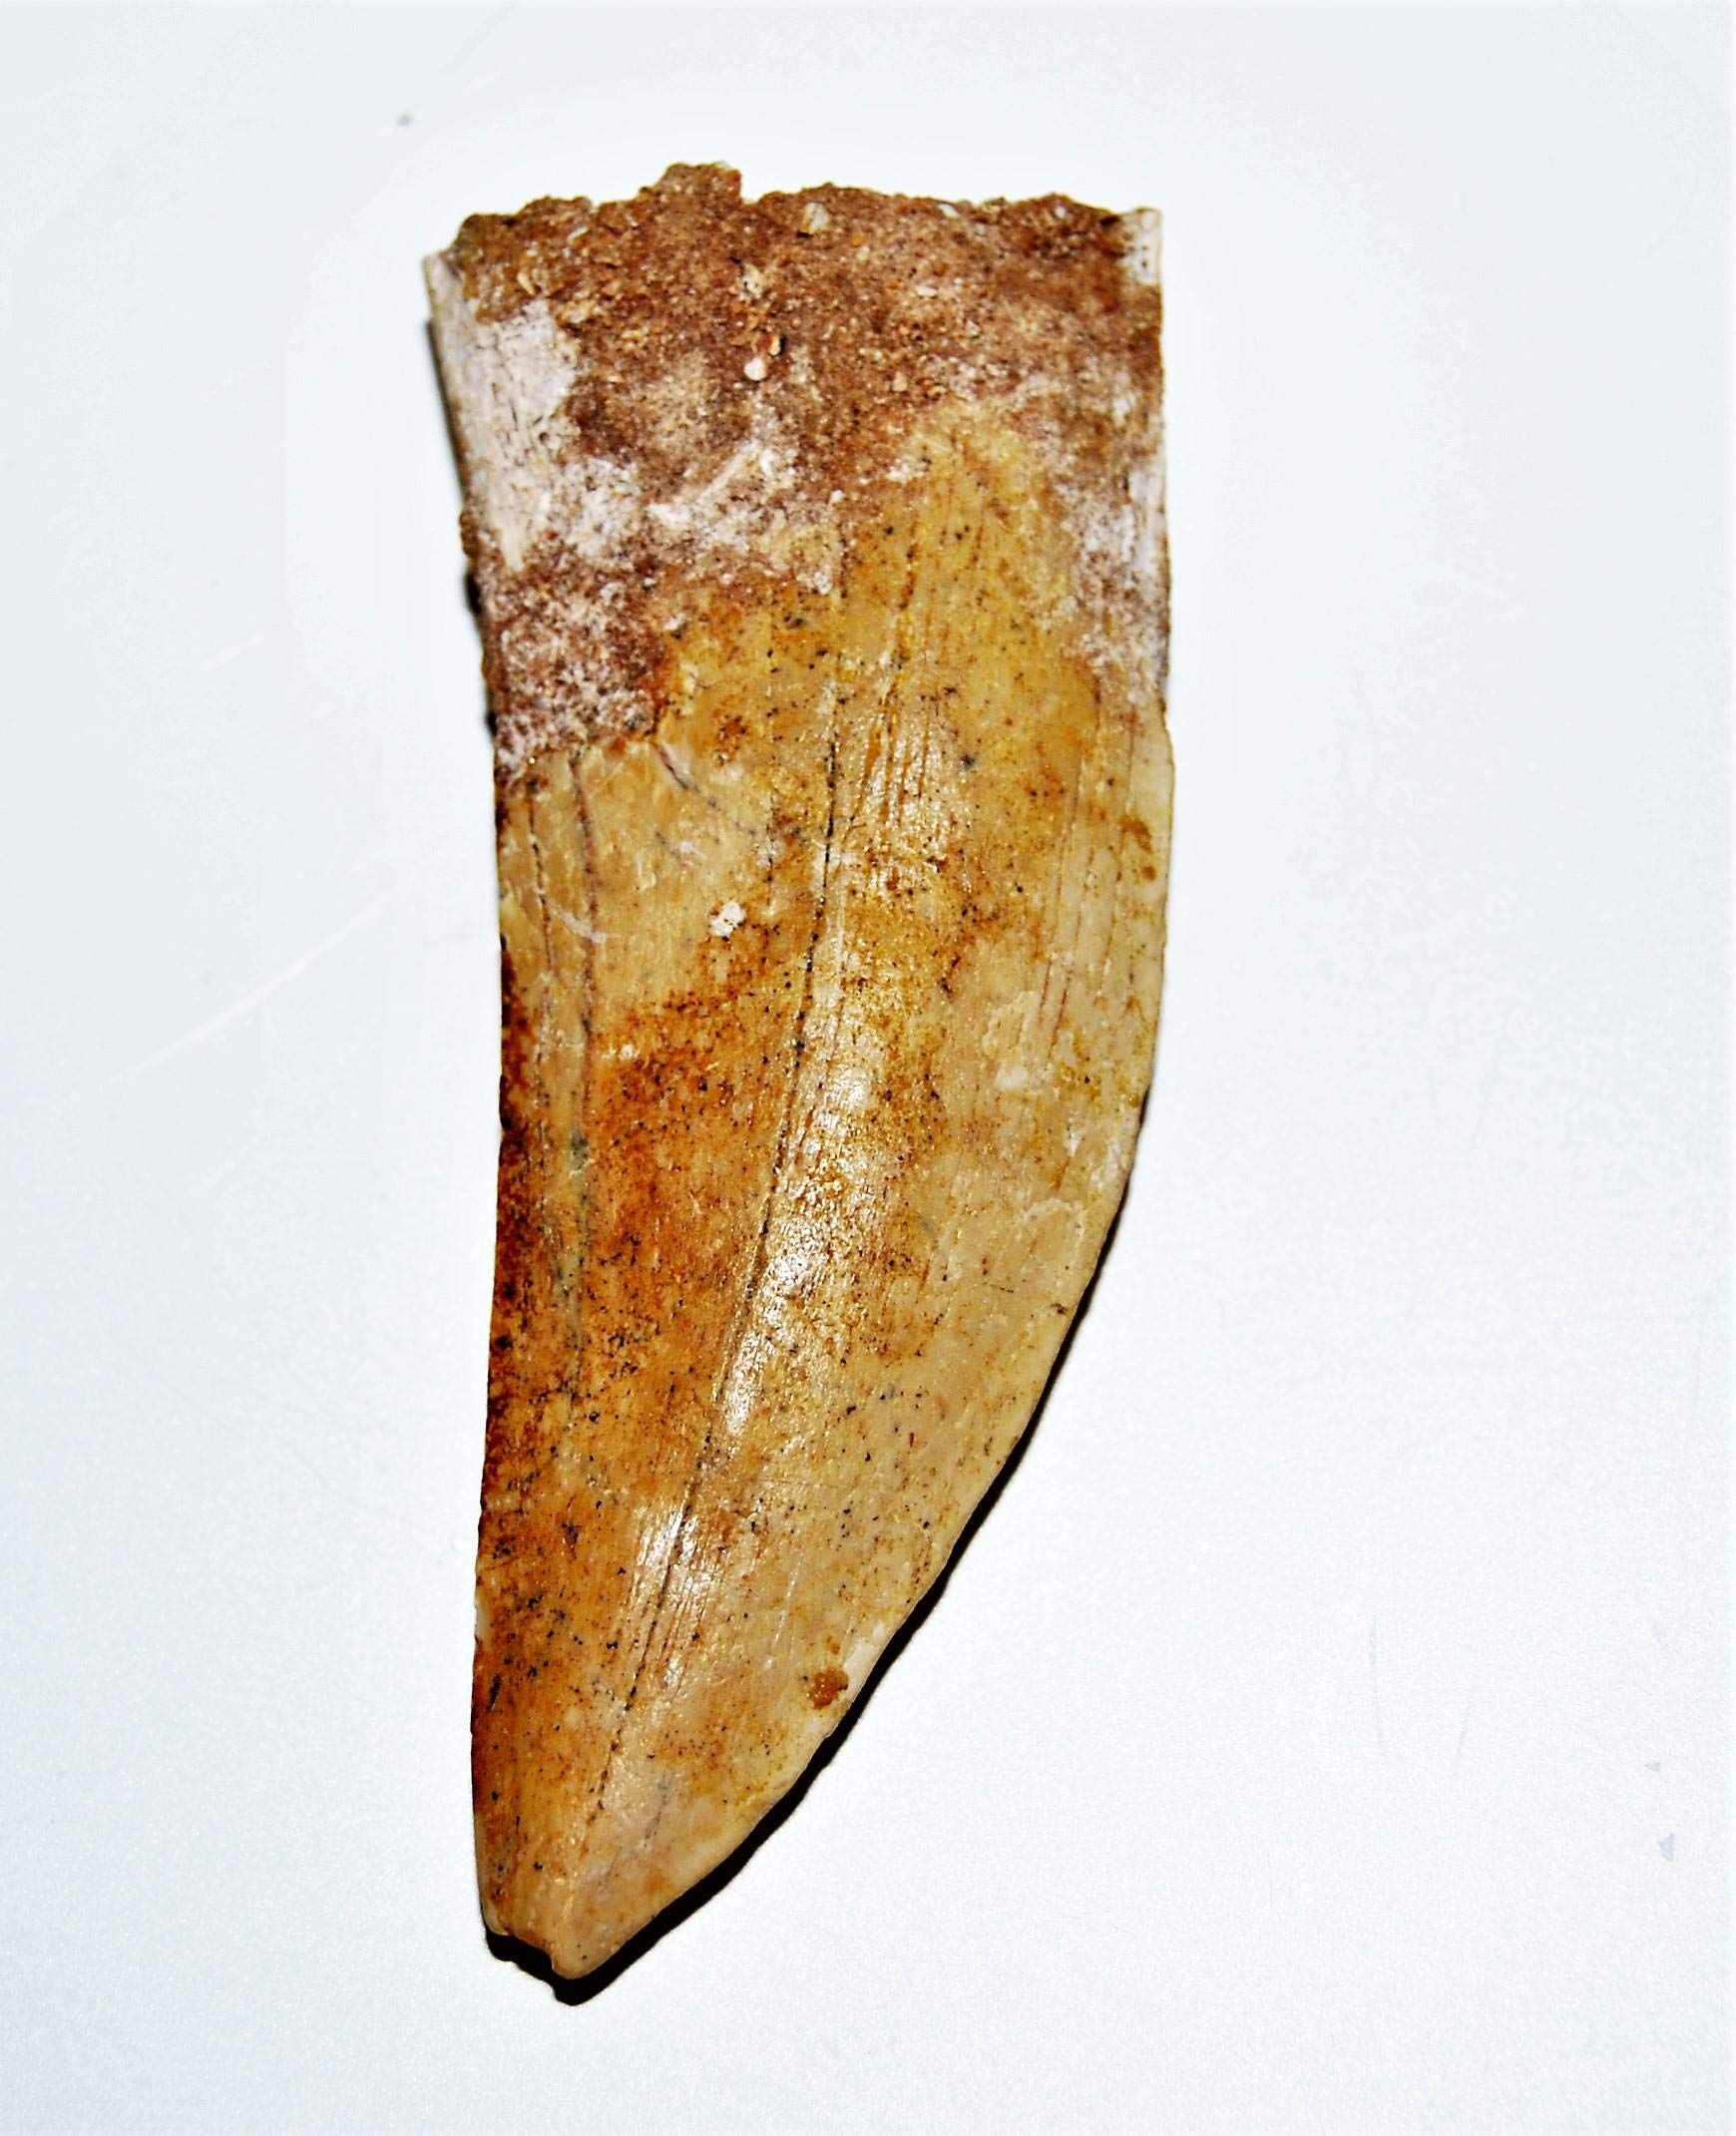 Carcharodontosaurus Dinosaur Tooth 2.878'' Fossil African T-Rex LDB #14167 15o by Fossils, Meteorites, & More (Image #3)